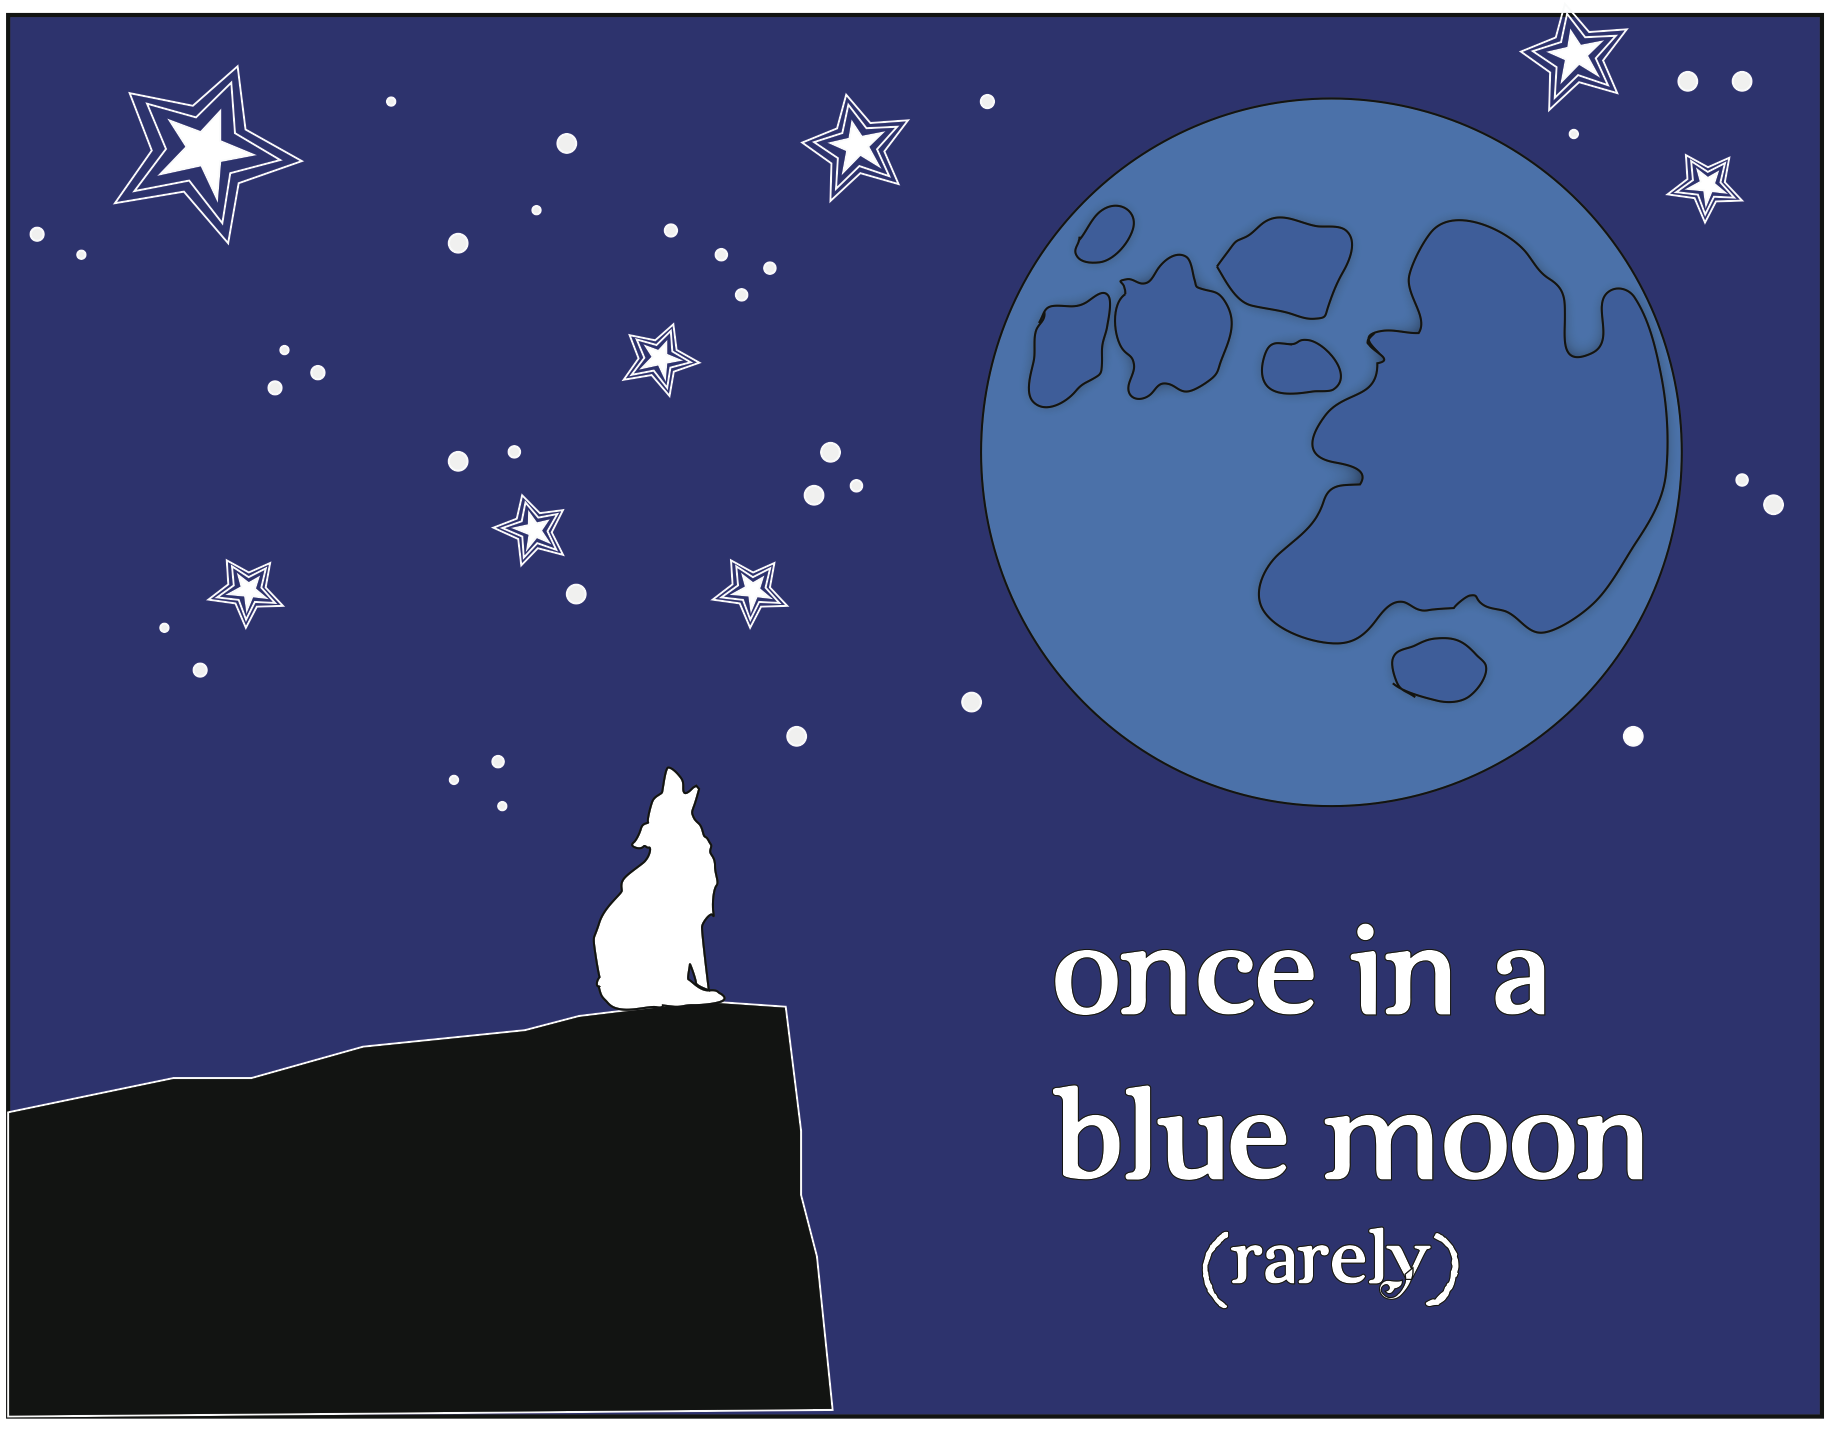 Once in a blue moon: very rarely #idioms #englishidioms #englishvocabulary : Idioms in English ...